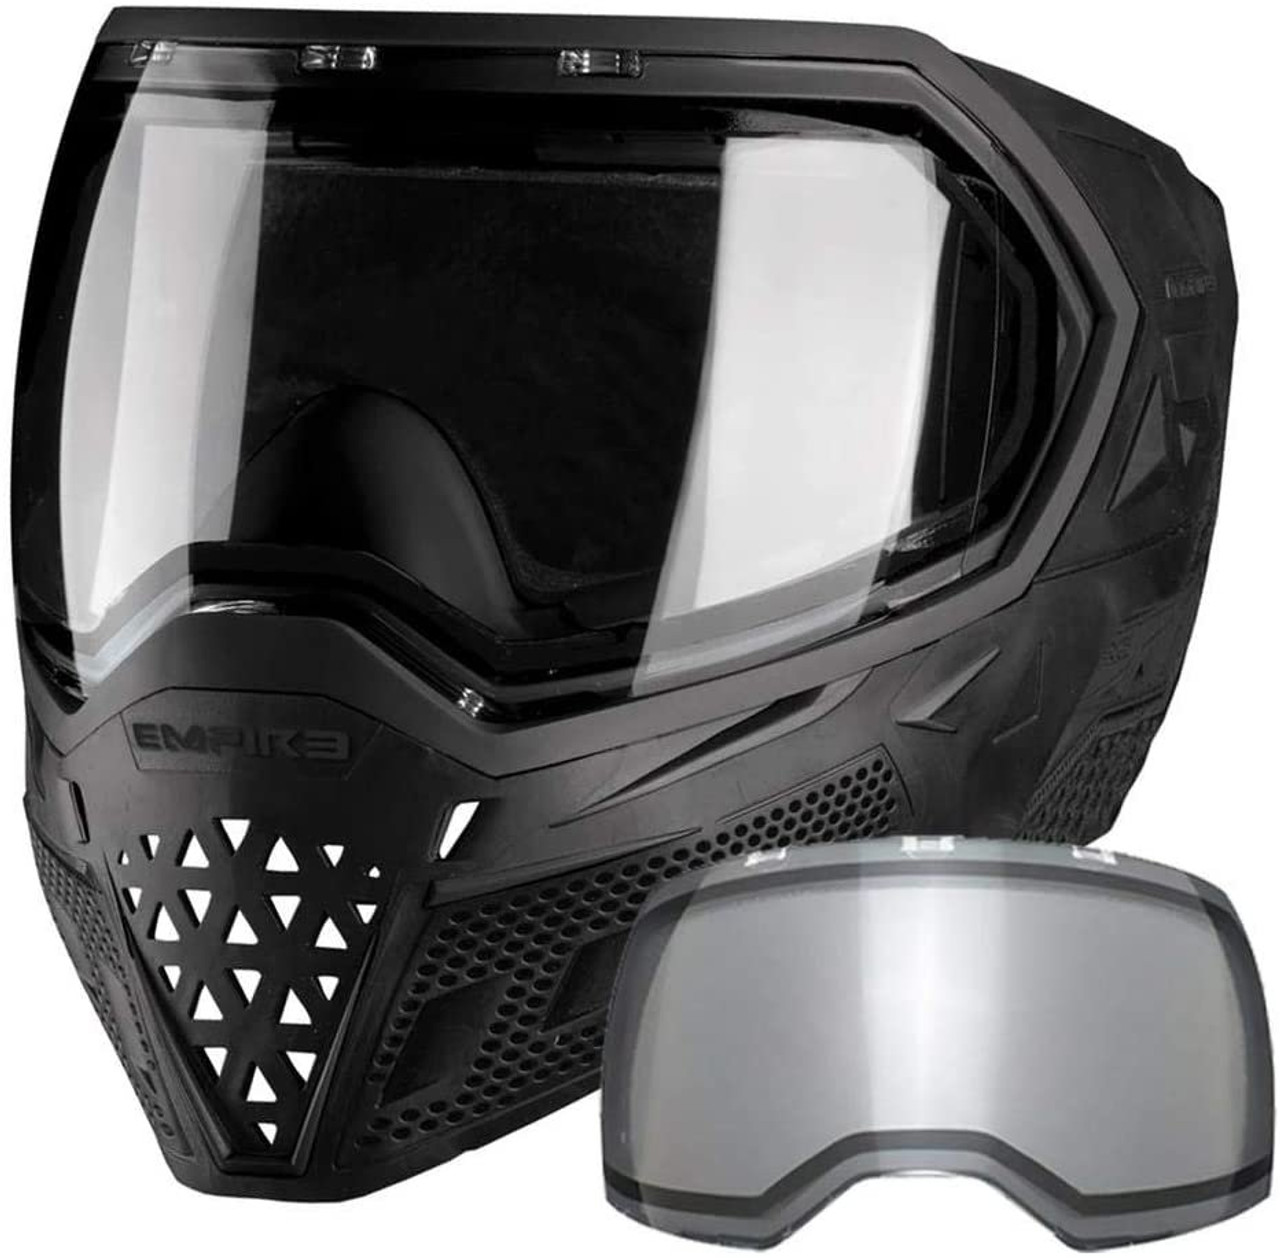 Clear Empire EVS Thermal Goggle Lens